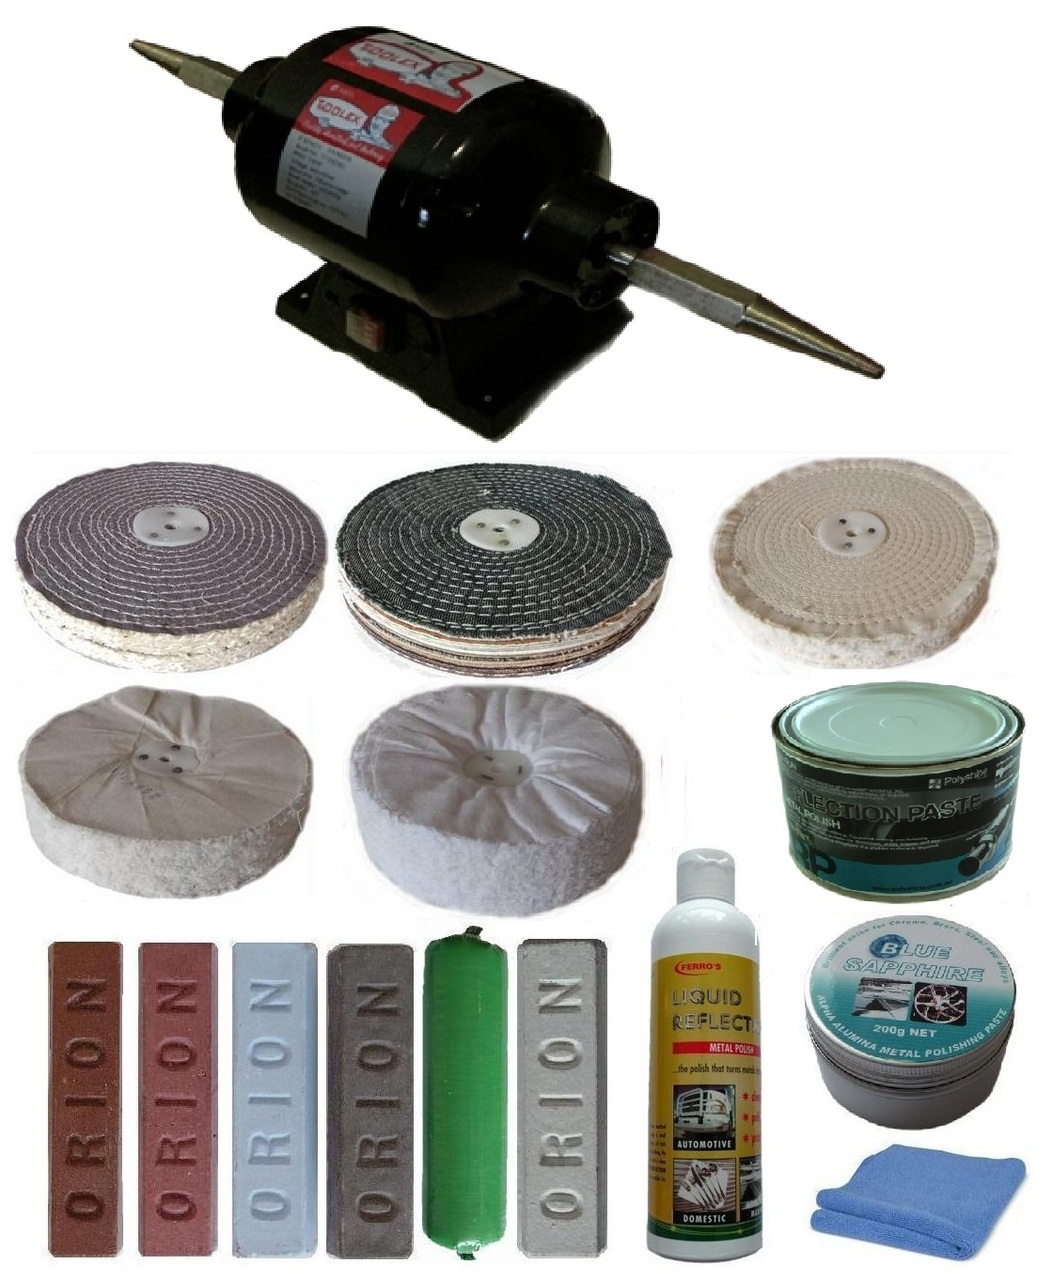 8″ 3/4hp Bench Polisher with 8 inch x 2 section Buffing Kit